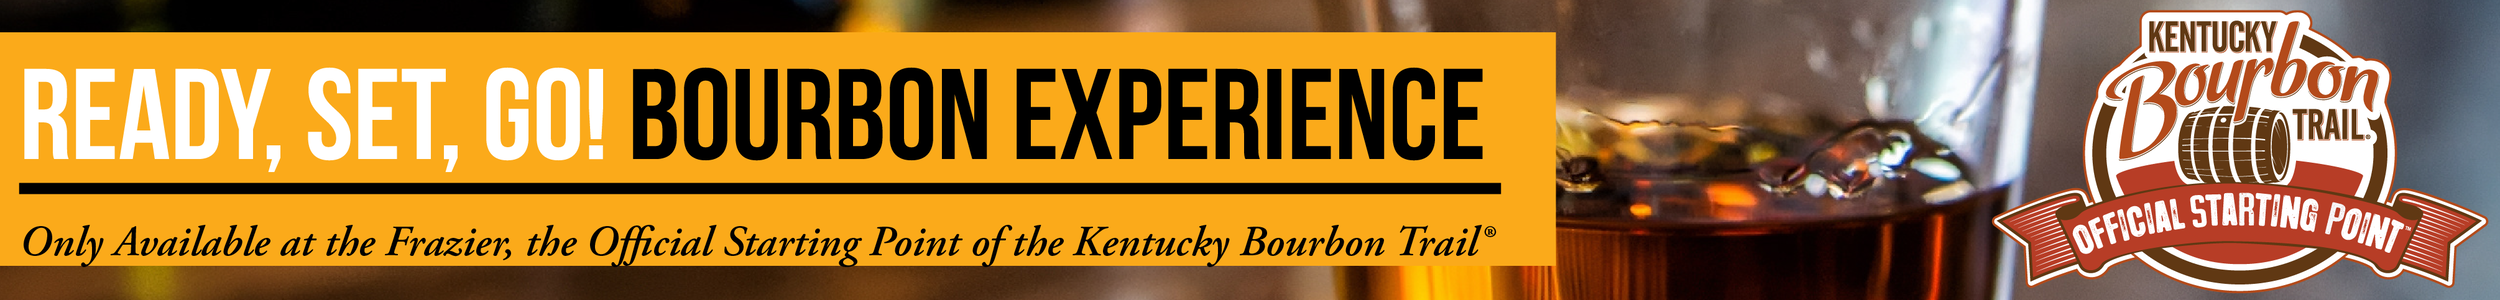 READY SET GO! BOURBON EXPERIENCE : Only Available at the Frazier, the Official Starting Point of the Kentucky Bourbon Trail